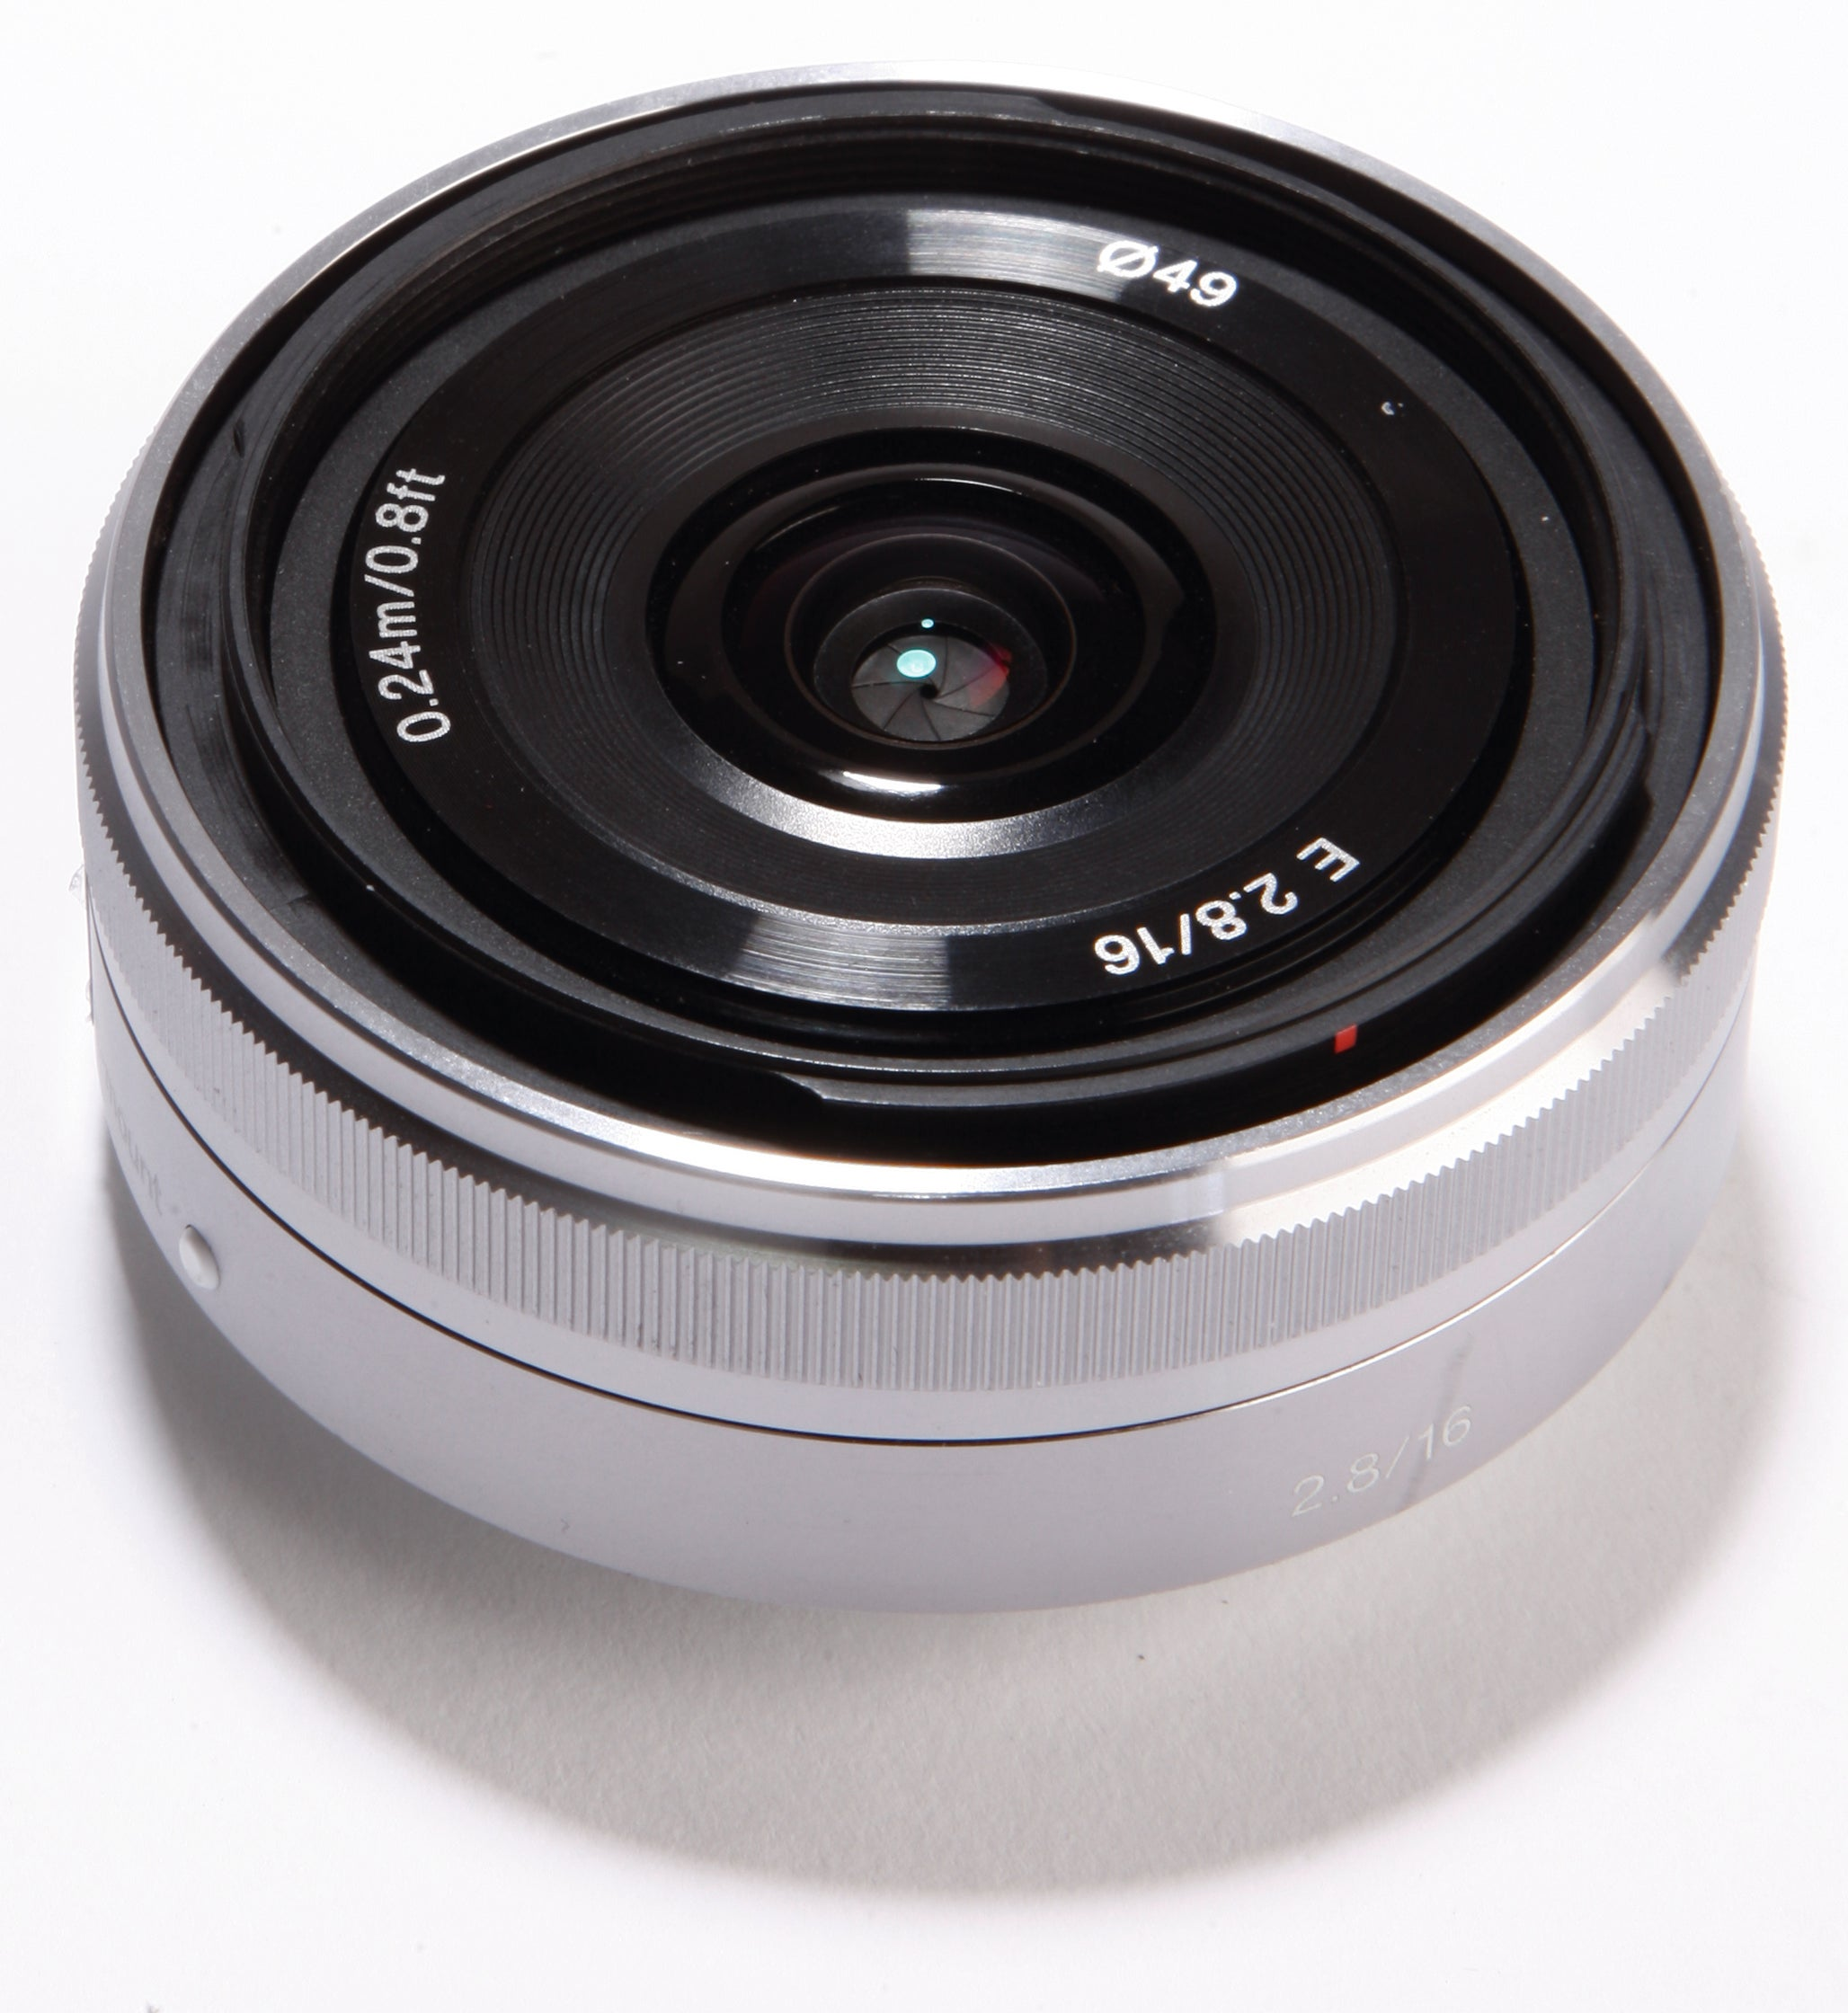 Sony 16mm F 2 8 Pancake Lens Review